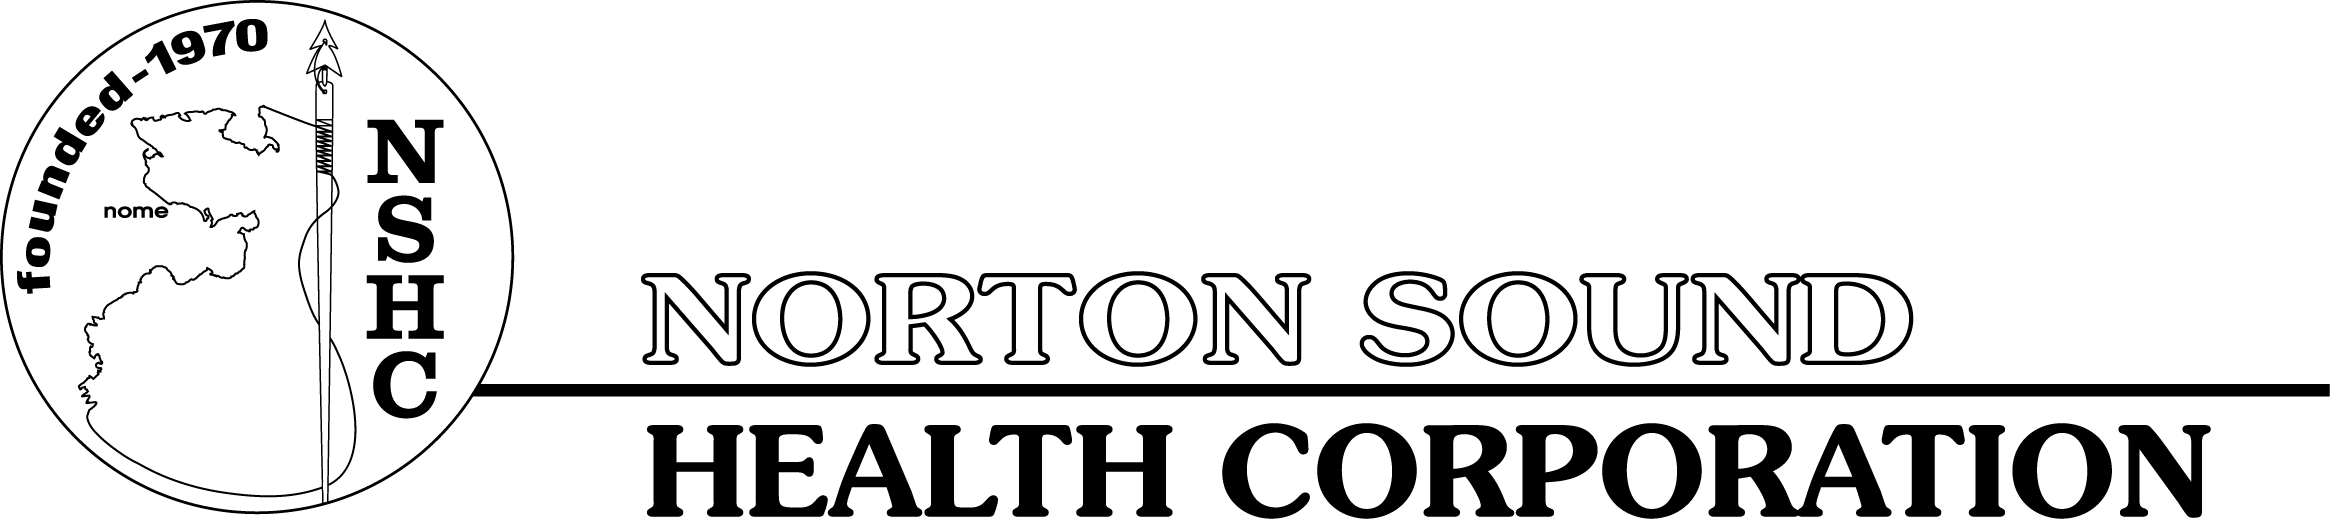 Family Practice Physicain - Norton Sound Health Corporation